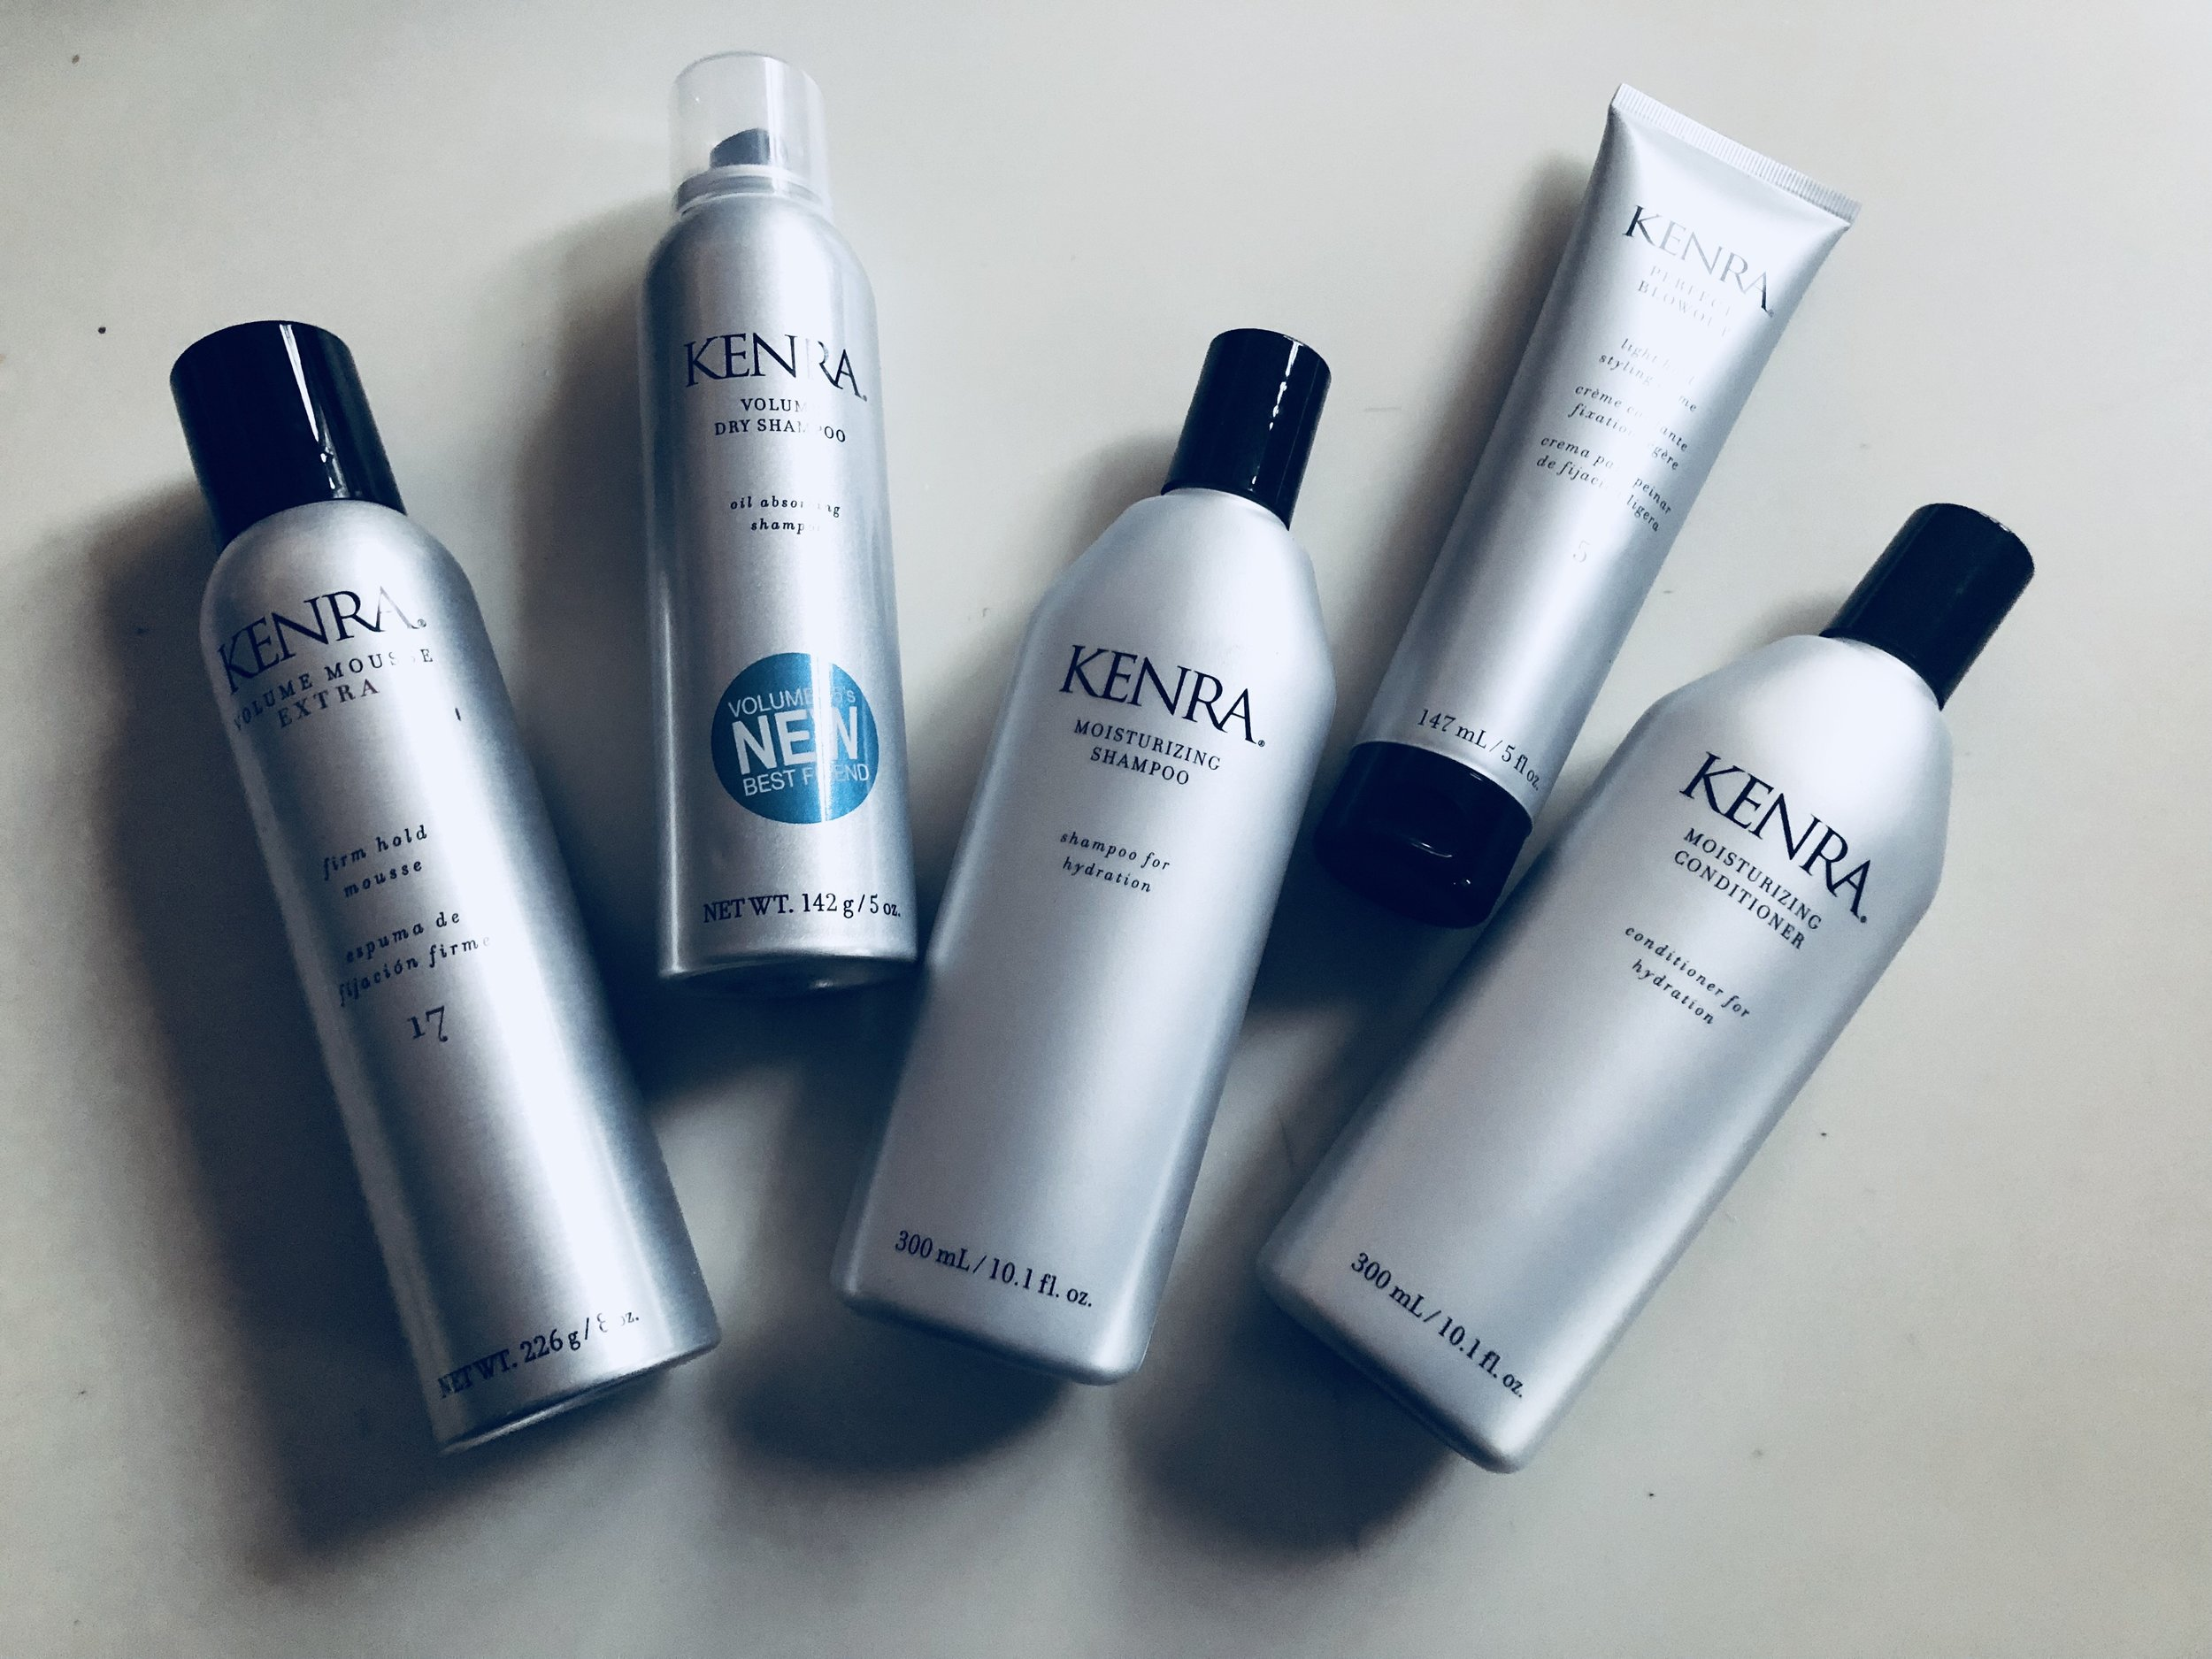 I always love    Kenra    products, but these have to by my top favorites! The shampoo and conditioner smell so amazing and leave my hair silky smooth. And for a girl who uses dry shampoo almost every day either to skip a wash or maintain the style their dry shampoo is a dream!